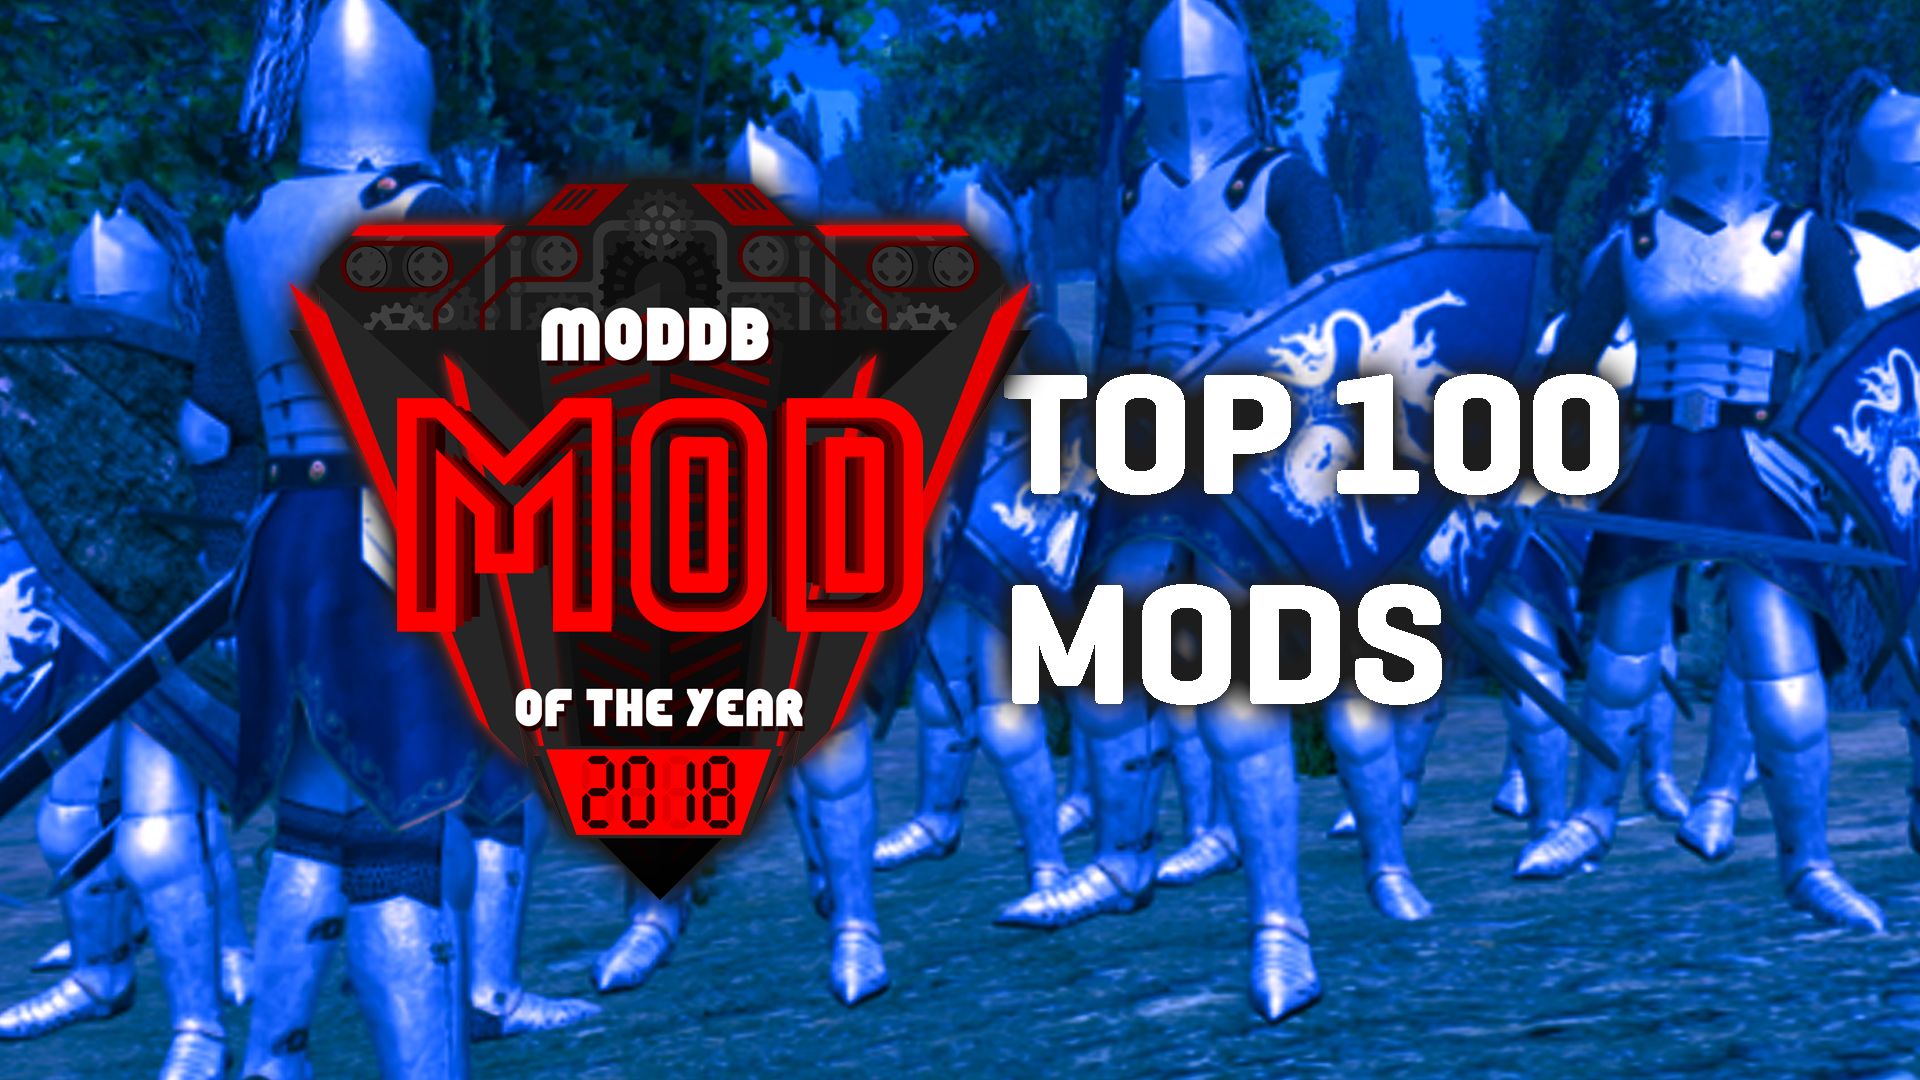 eoy18 moddb top 100